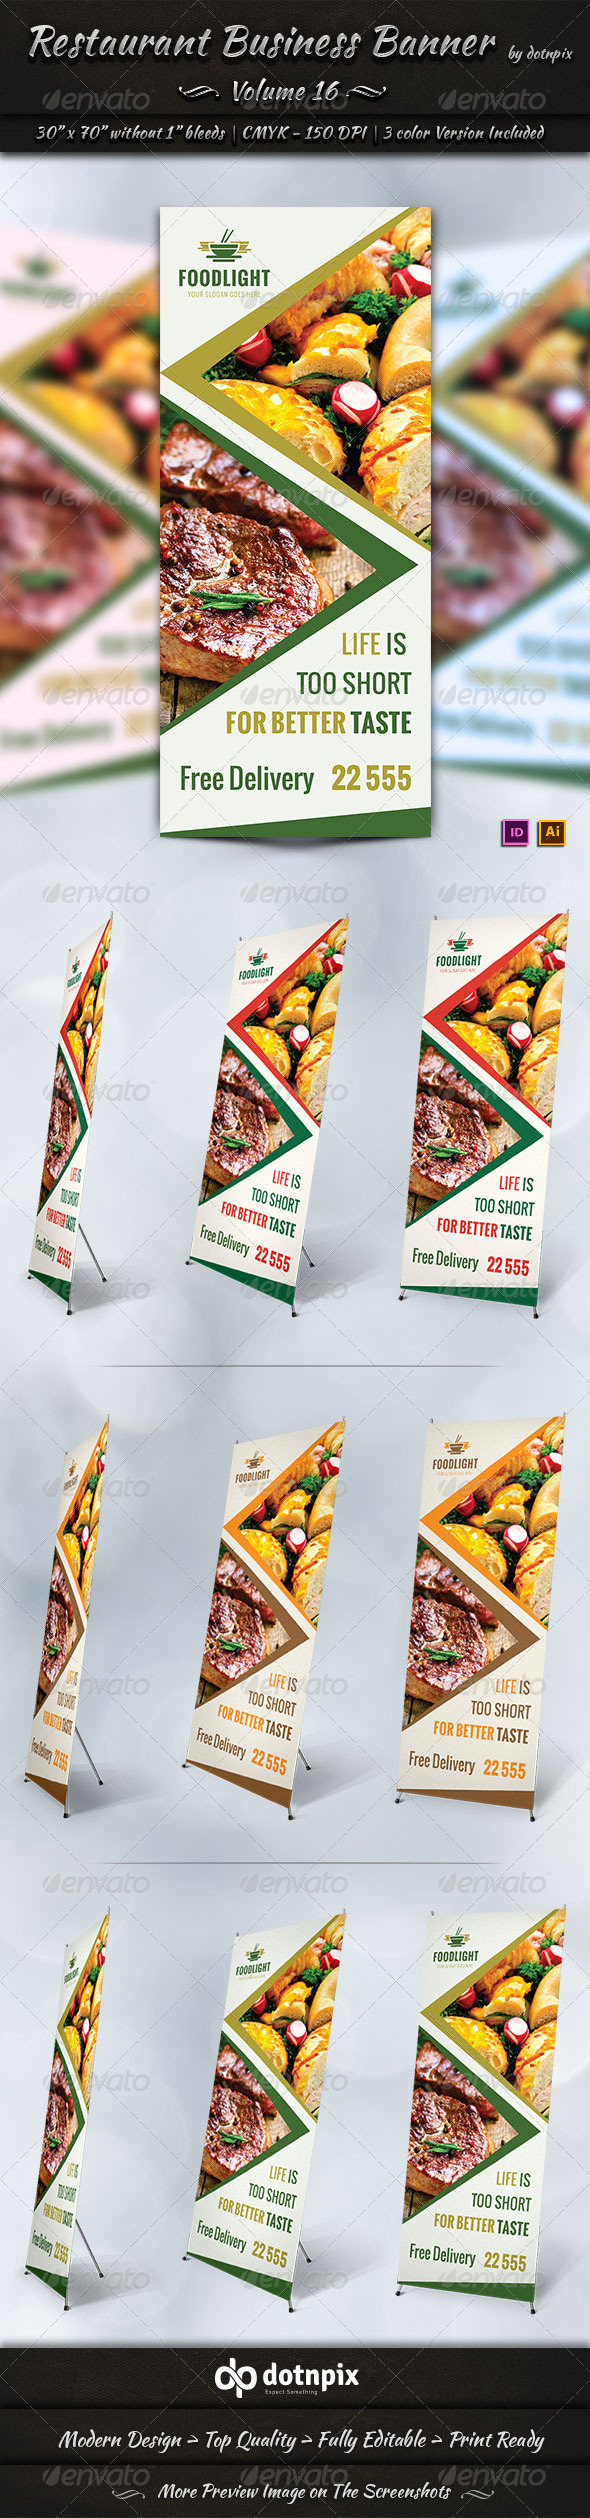 Restaurant Business Banner Volume 16